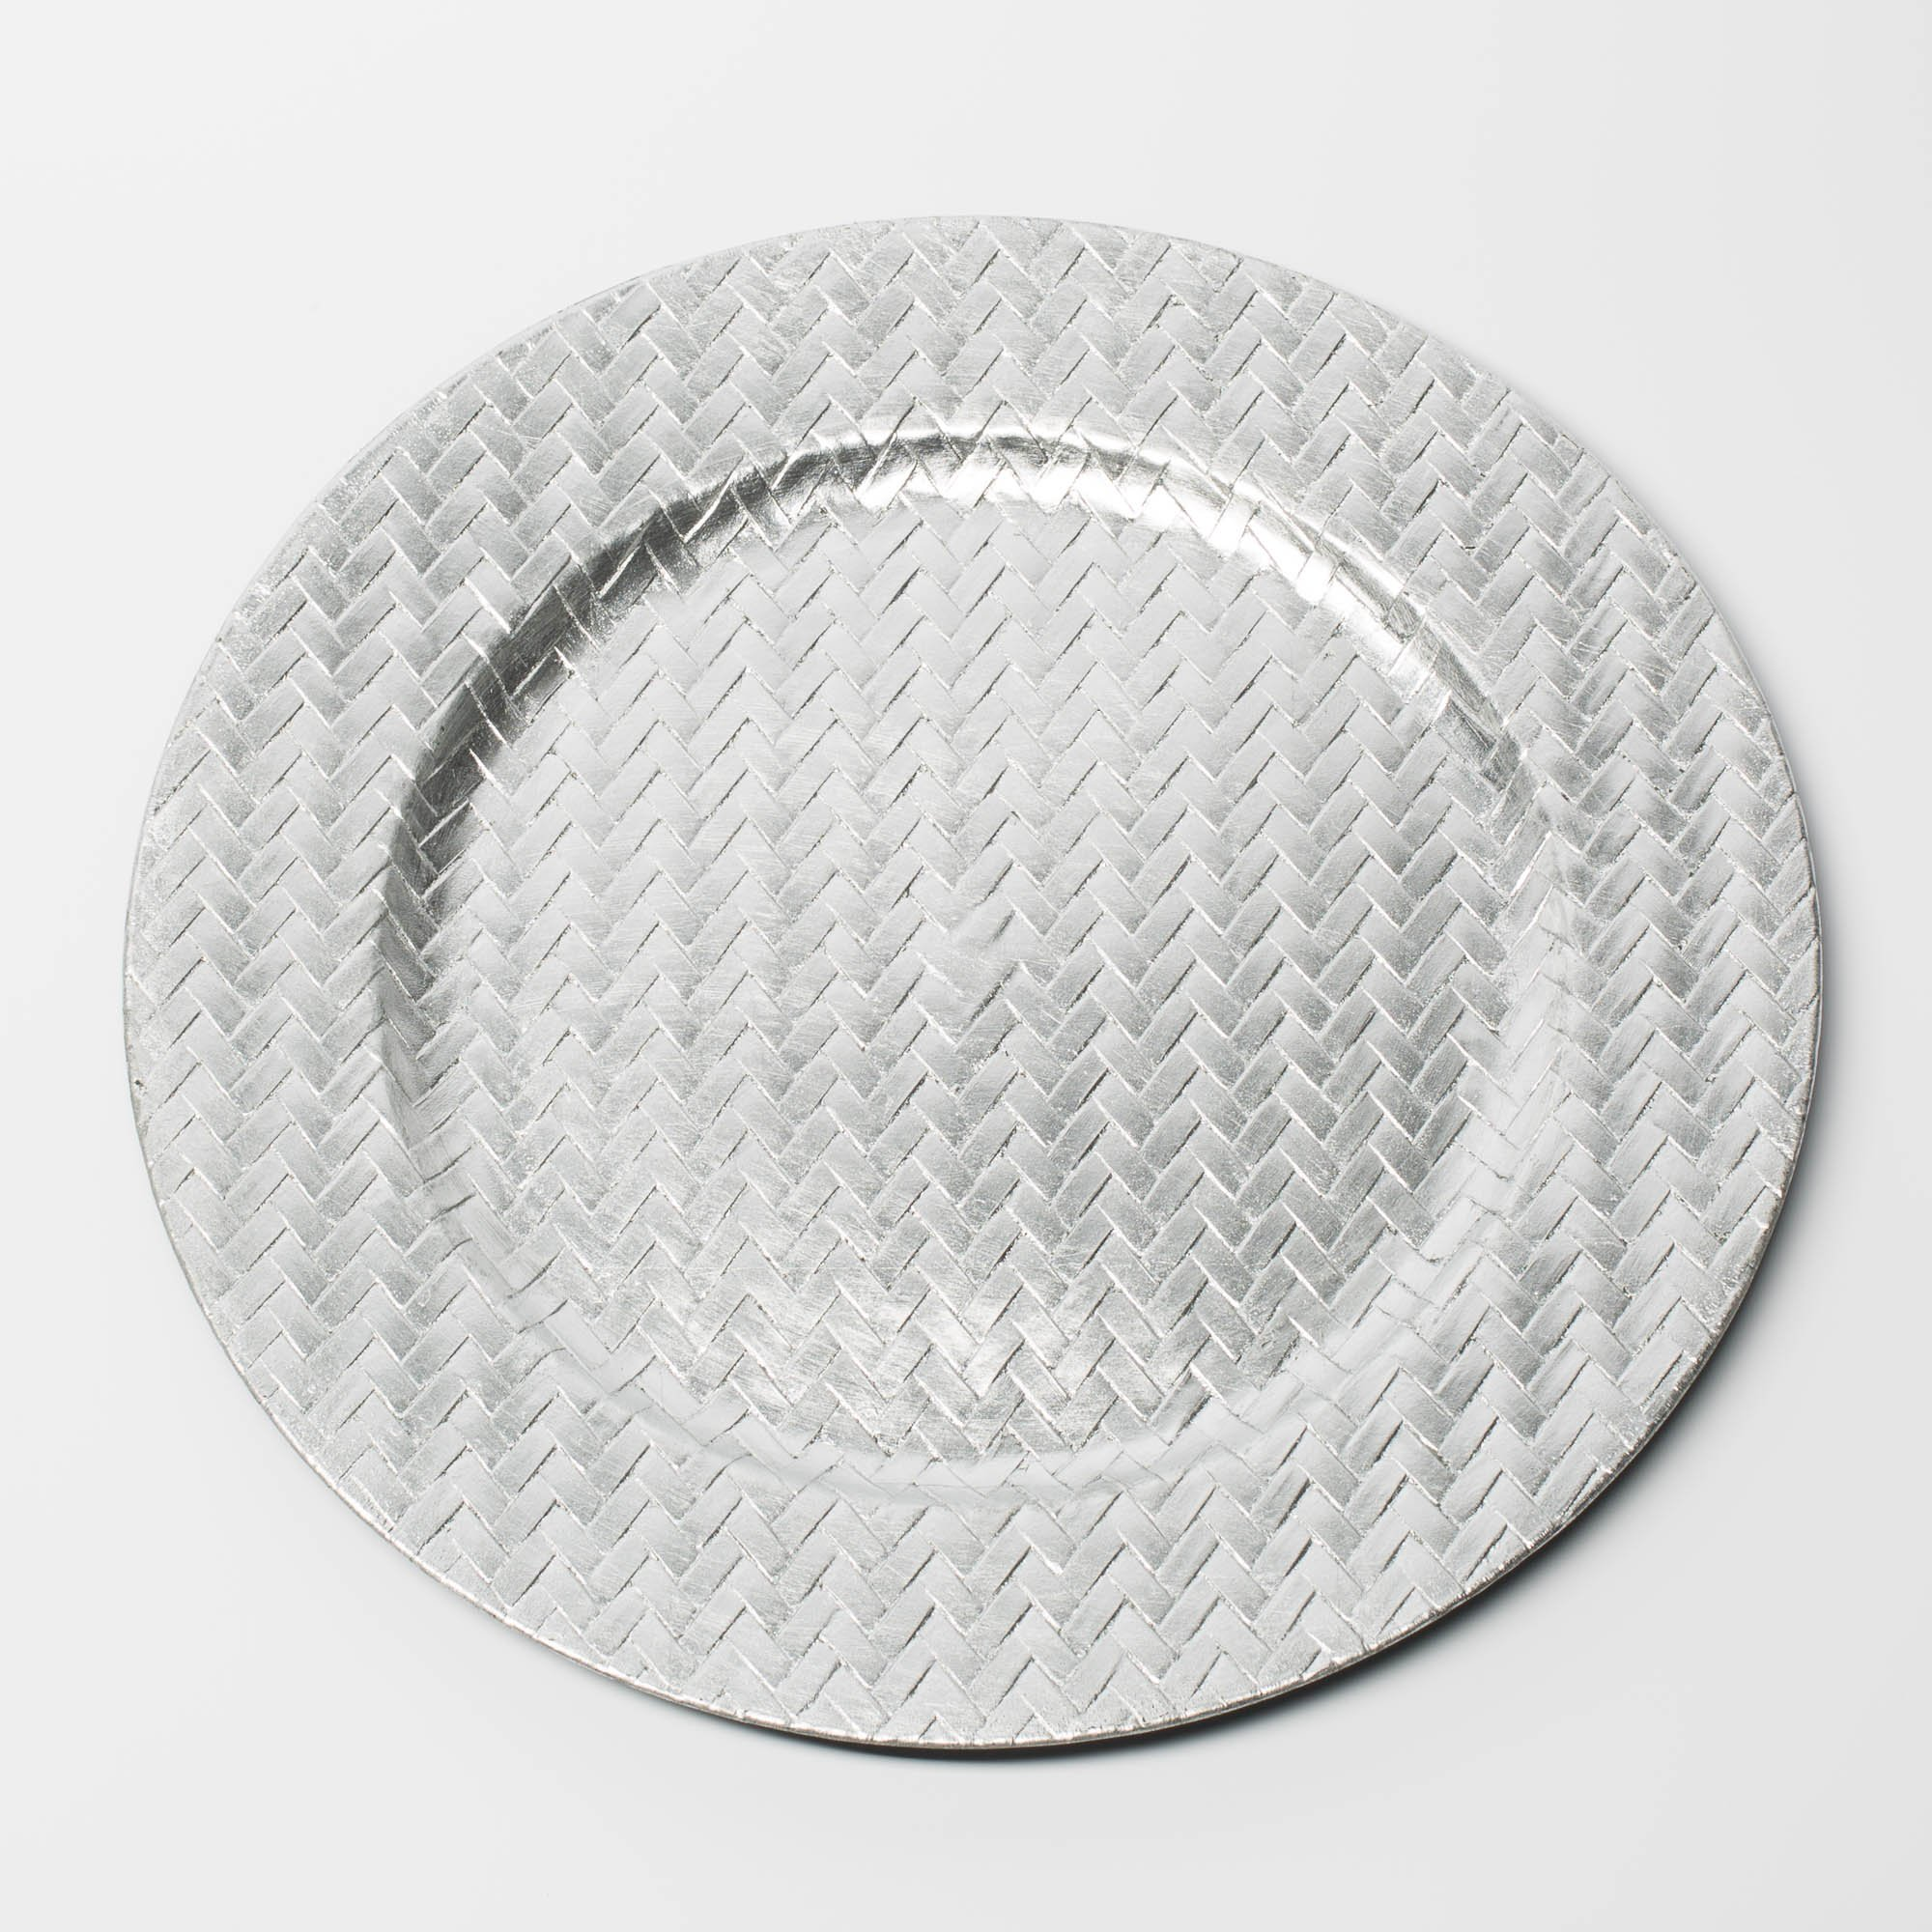 Richland Charger Plate 13'' Woven Silver Set of 12